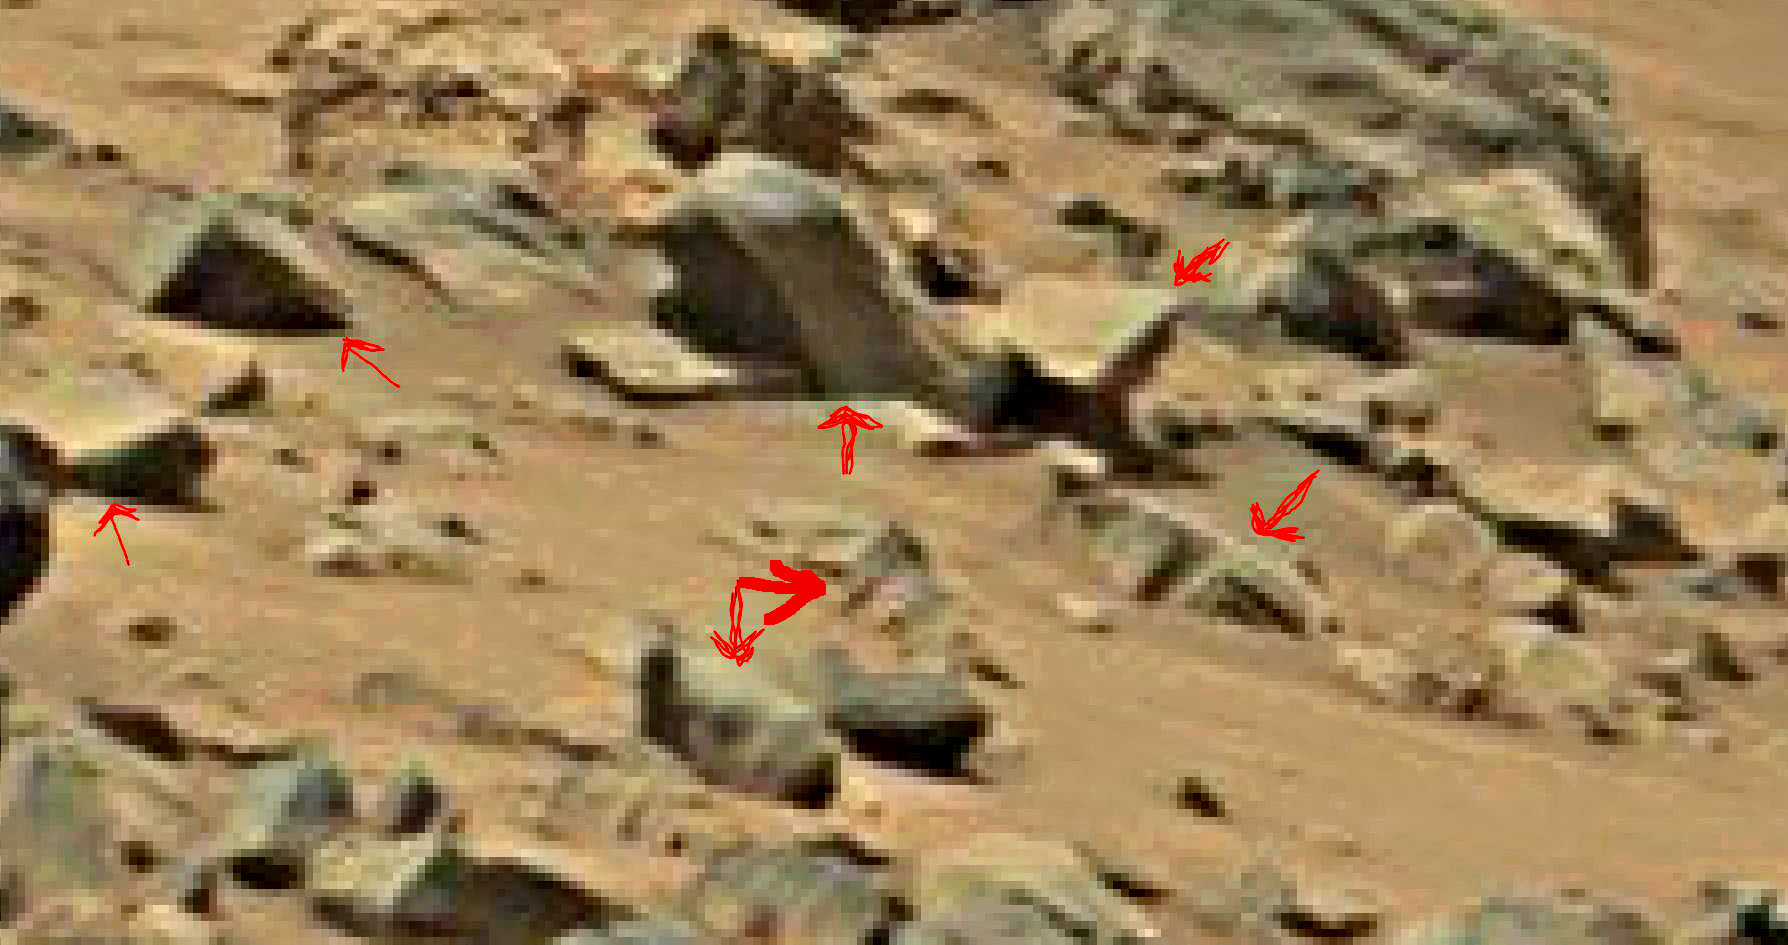 Sol-710-mars-rover-artifacts-harry-23a